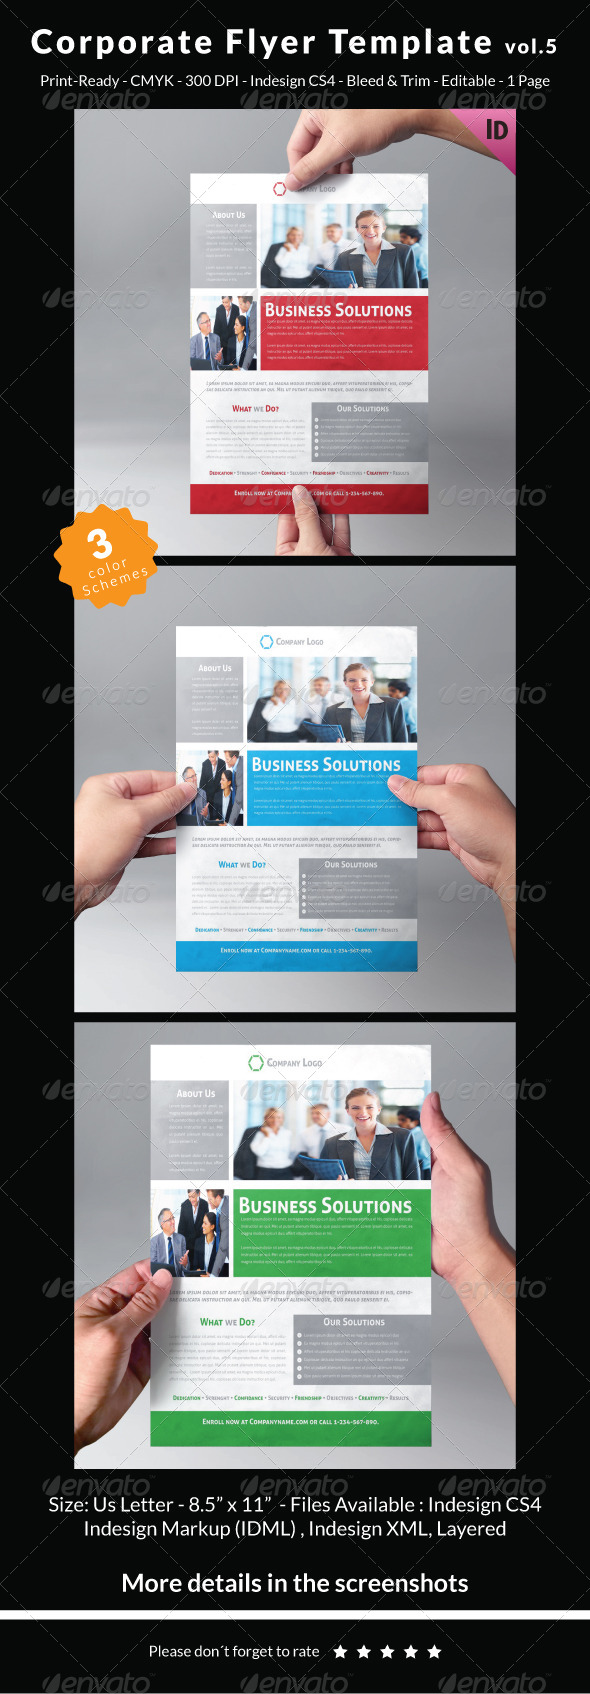 Corporate Flyer Template Vol.5 - Corporate Flyers